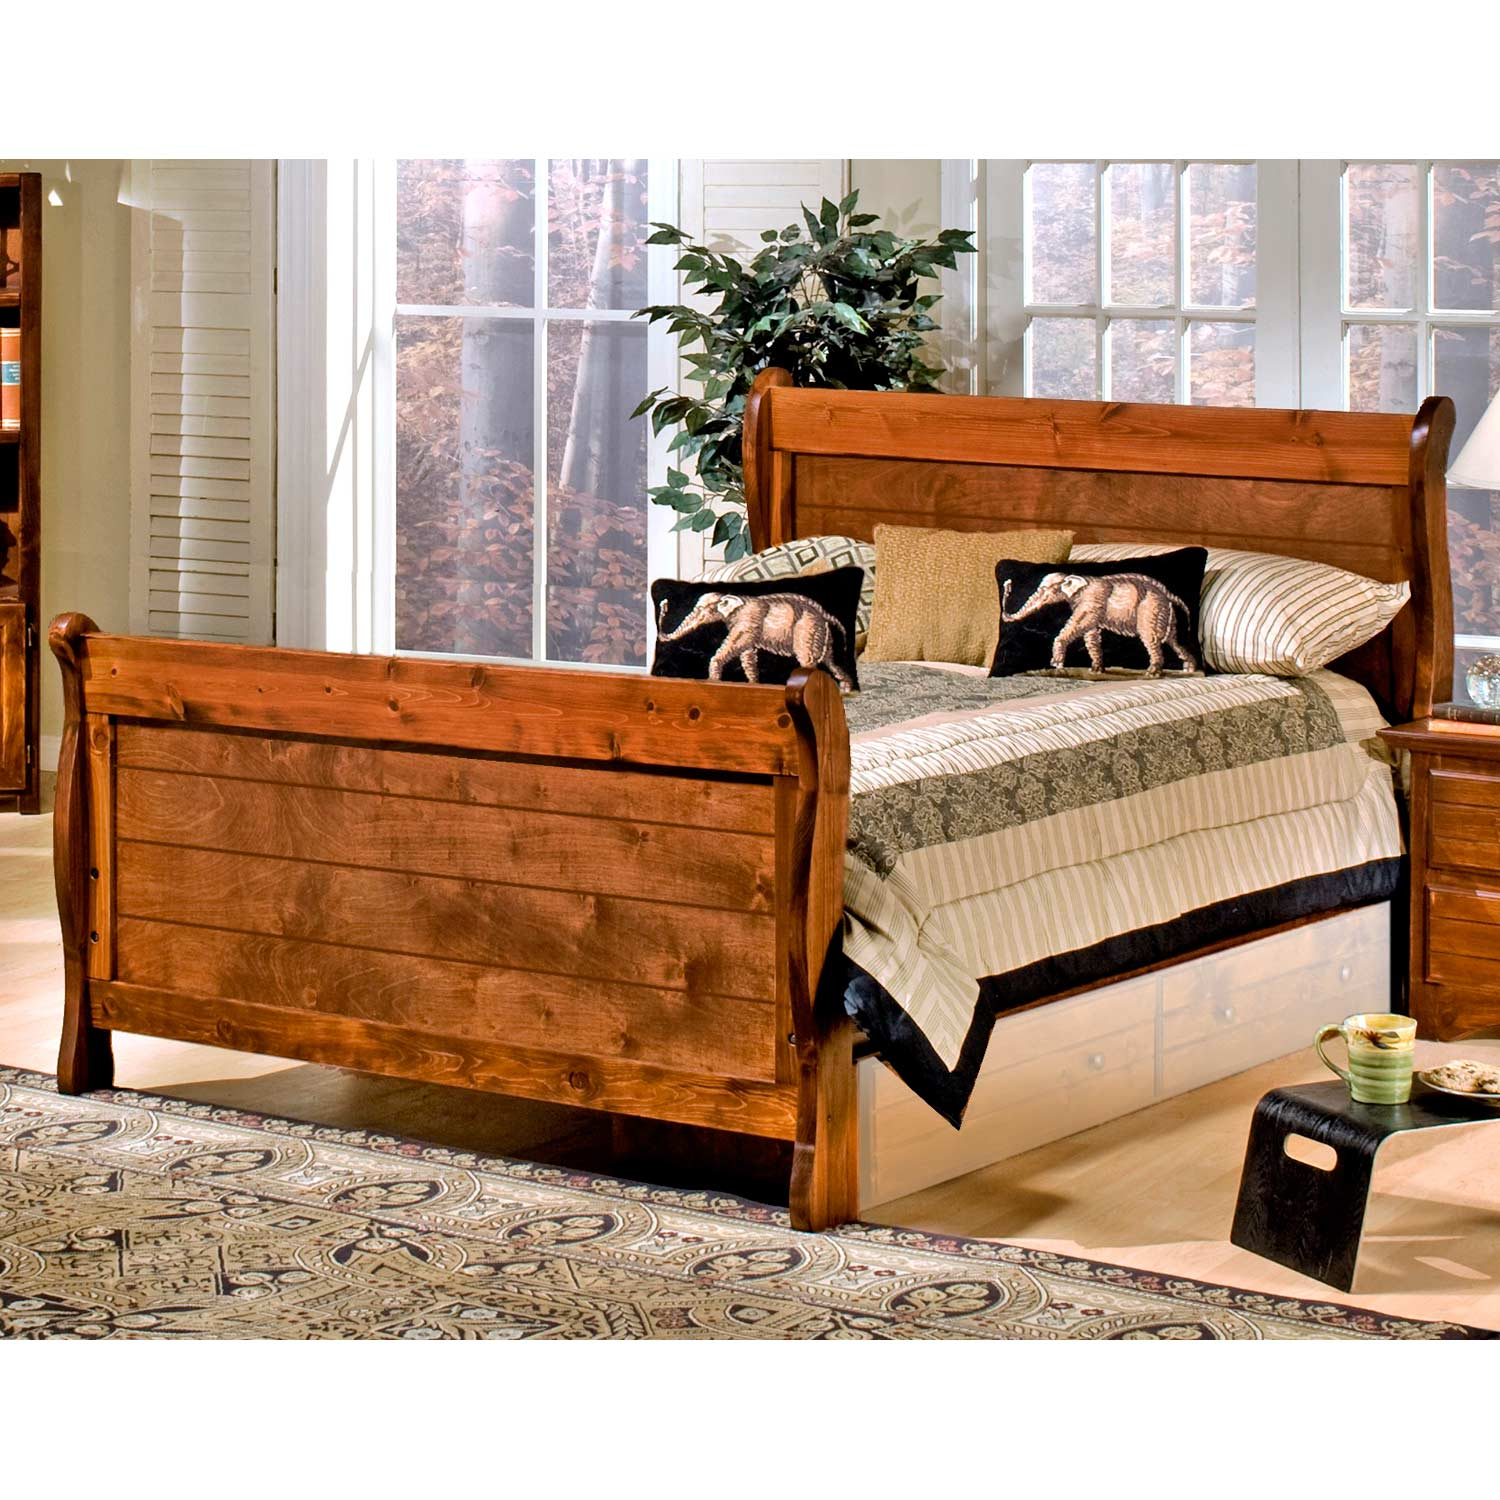 Full Sleigh Bed - Bead Board Panels, Cocoa Finish